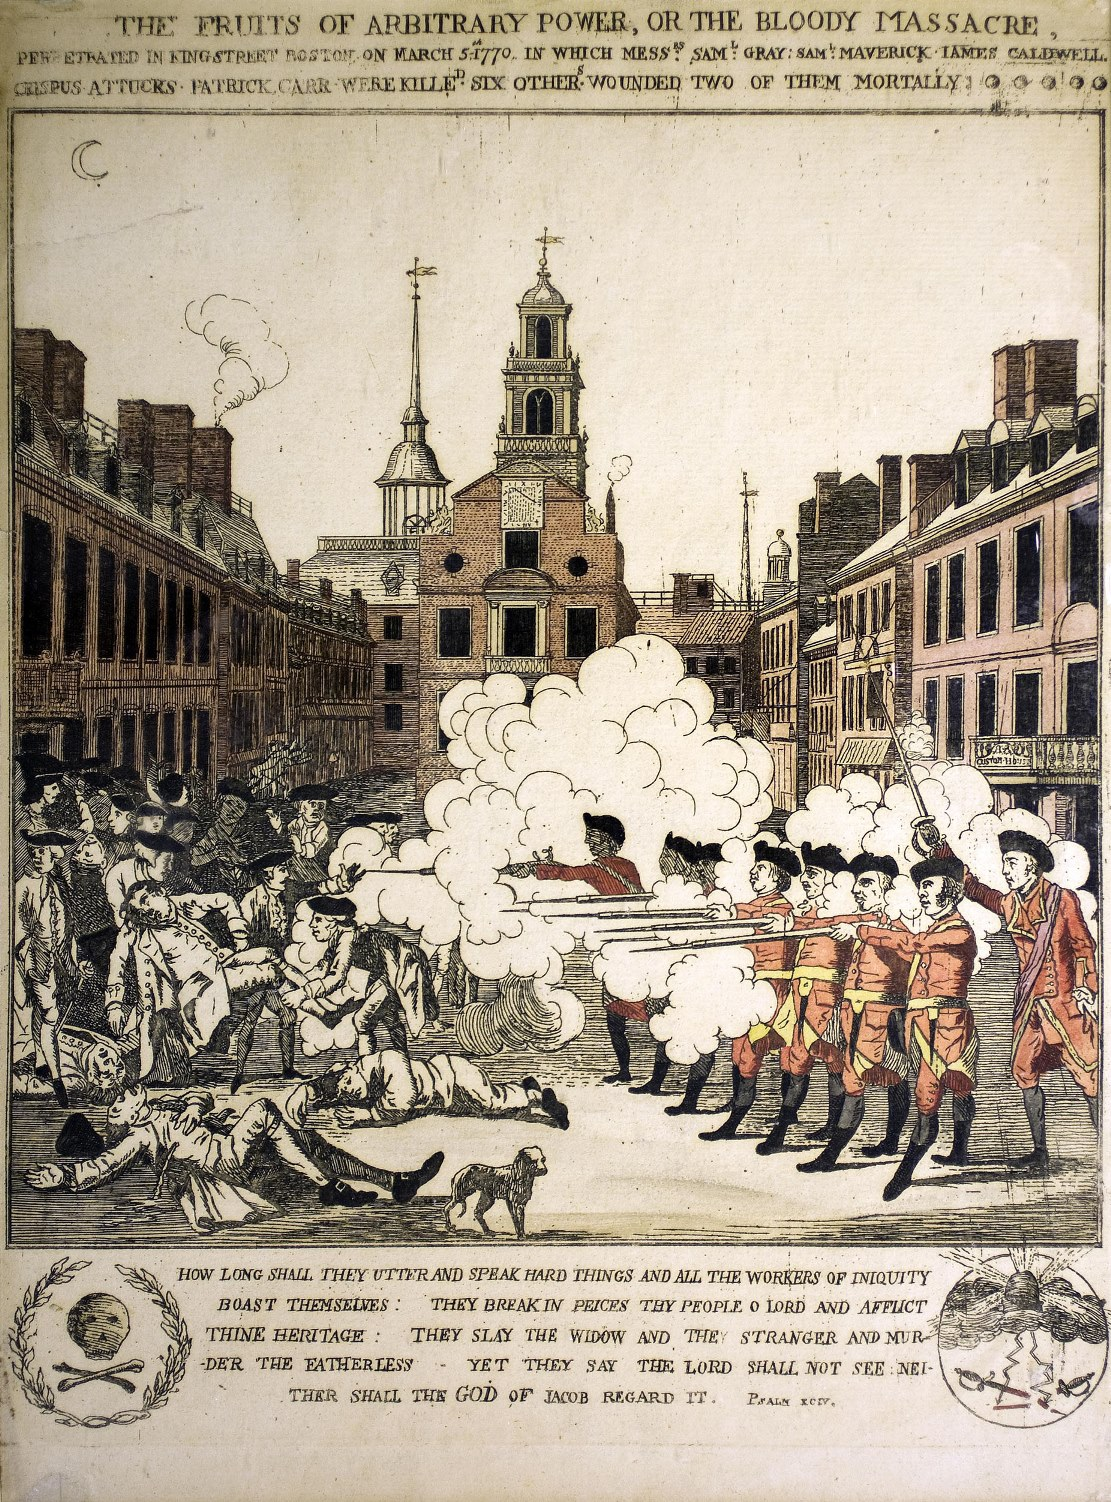 a history of the american revolution and the emancipation from the british empire An empire divided: the american revolution and the british caribbean (early american studies) [andrew jackson o'shaughnessy] on amazoncom free shipping on qualifying offers.